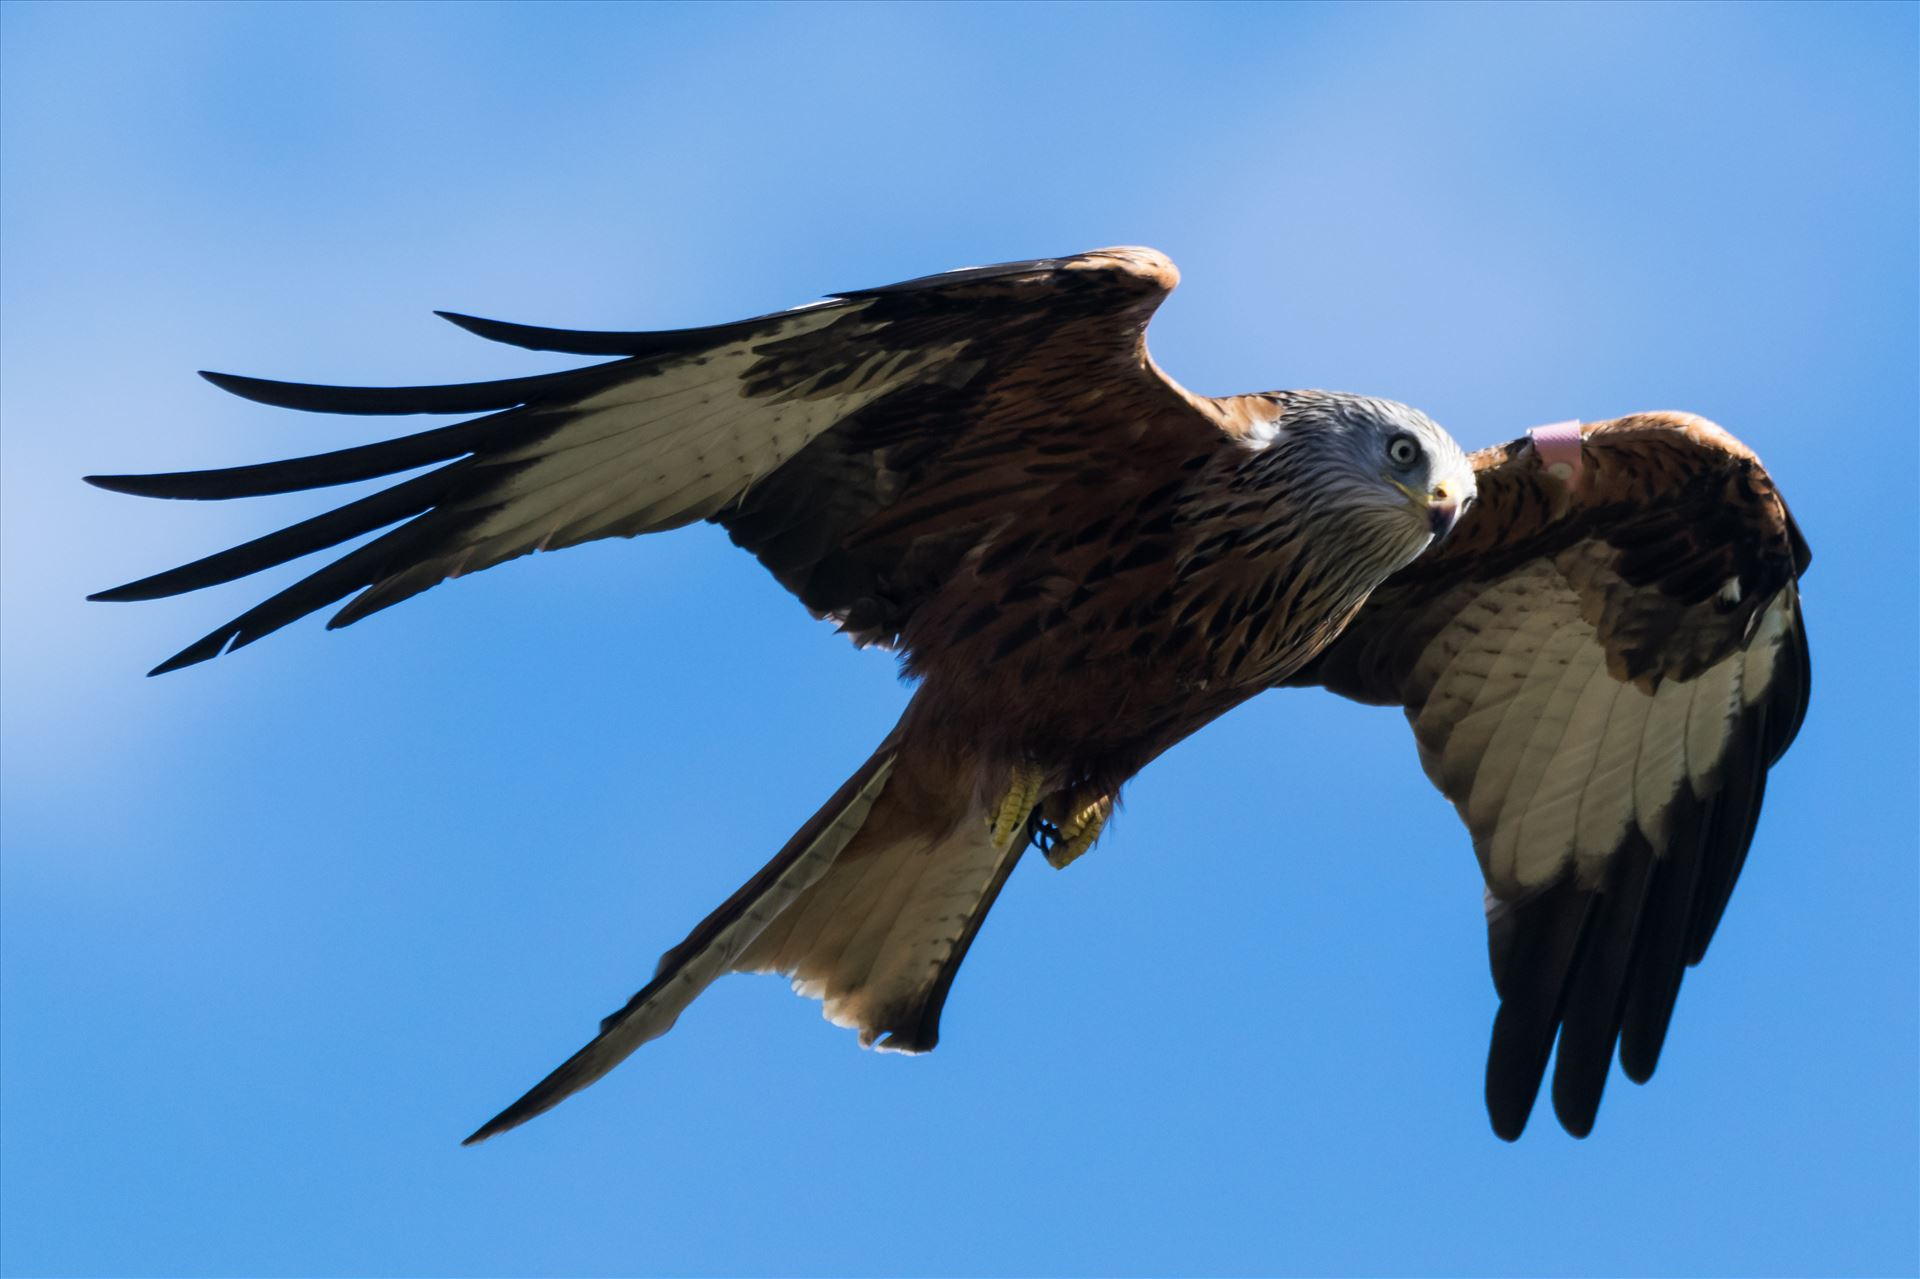 Red Kite on the Wind - A red Kite on the Wind, taken at Far Pastures in 2017 by AJ Stoves Photography